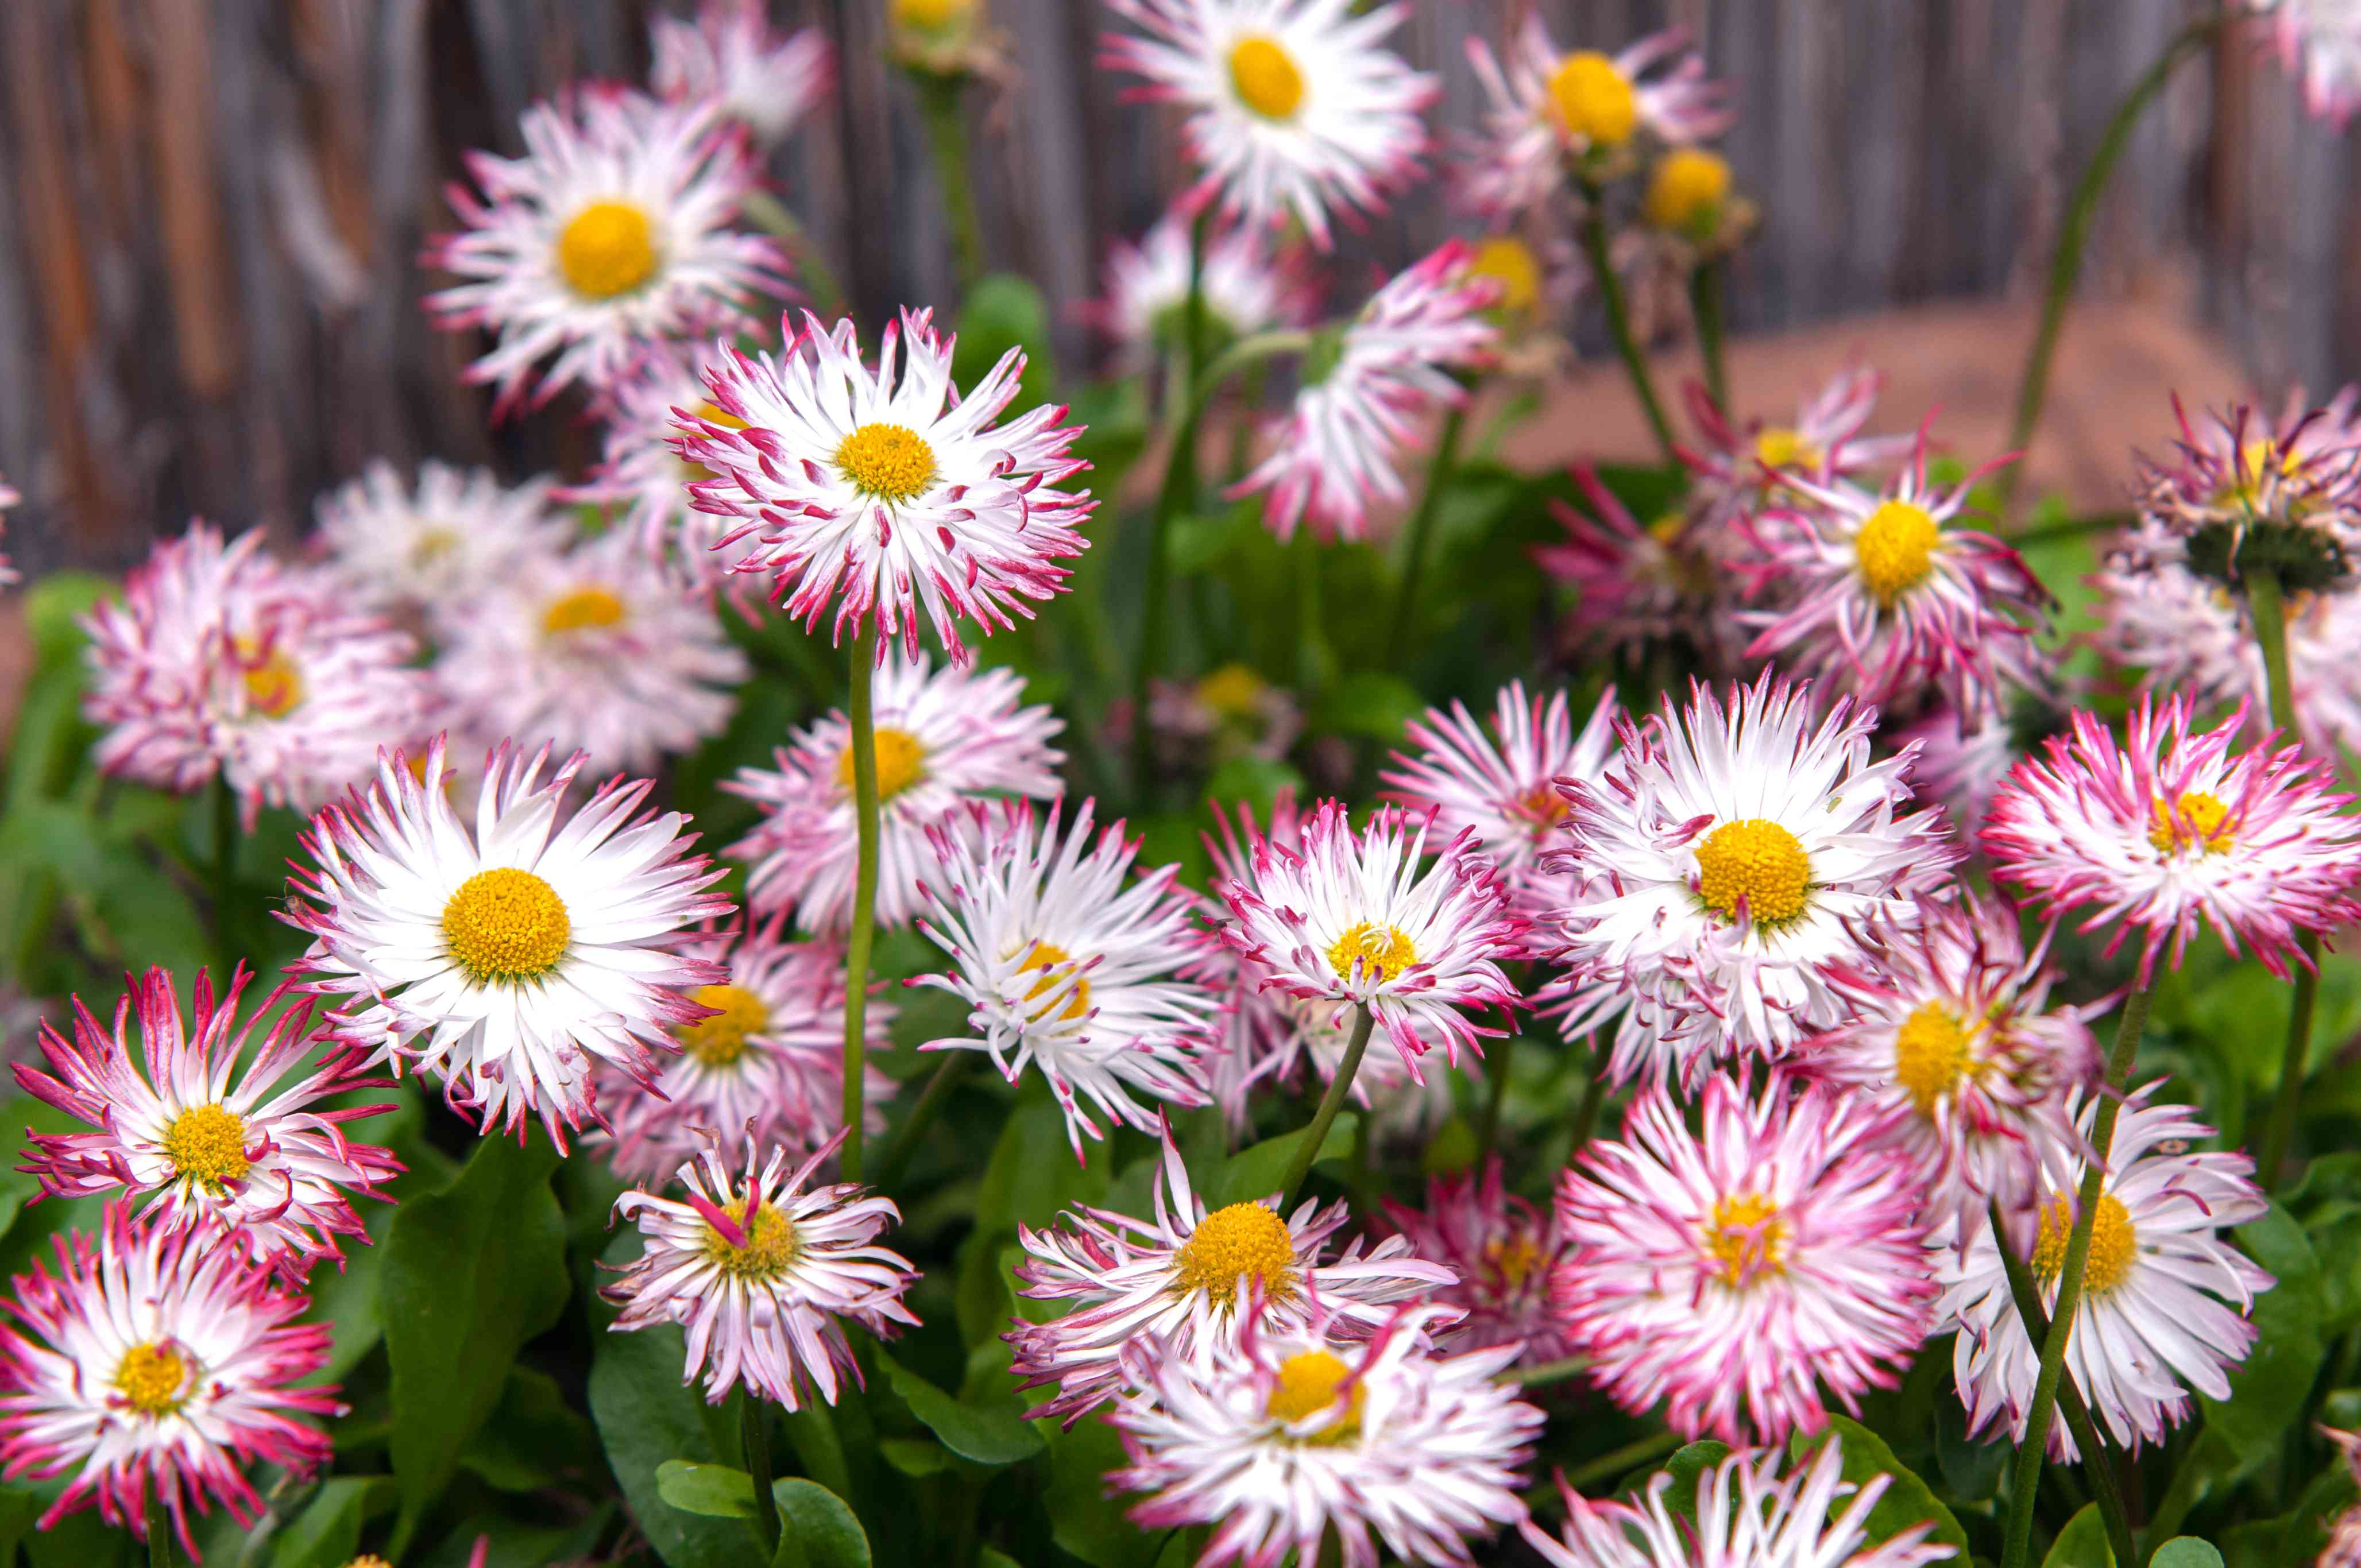 English daisies with white flowers and pink tips